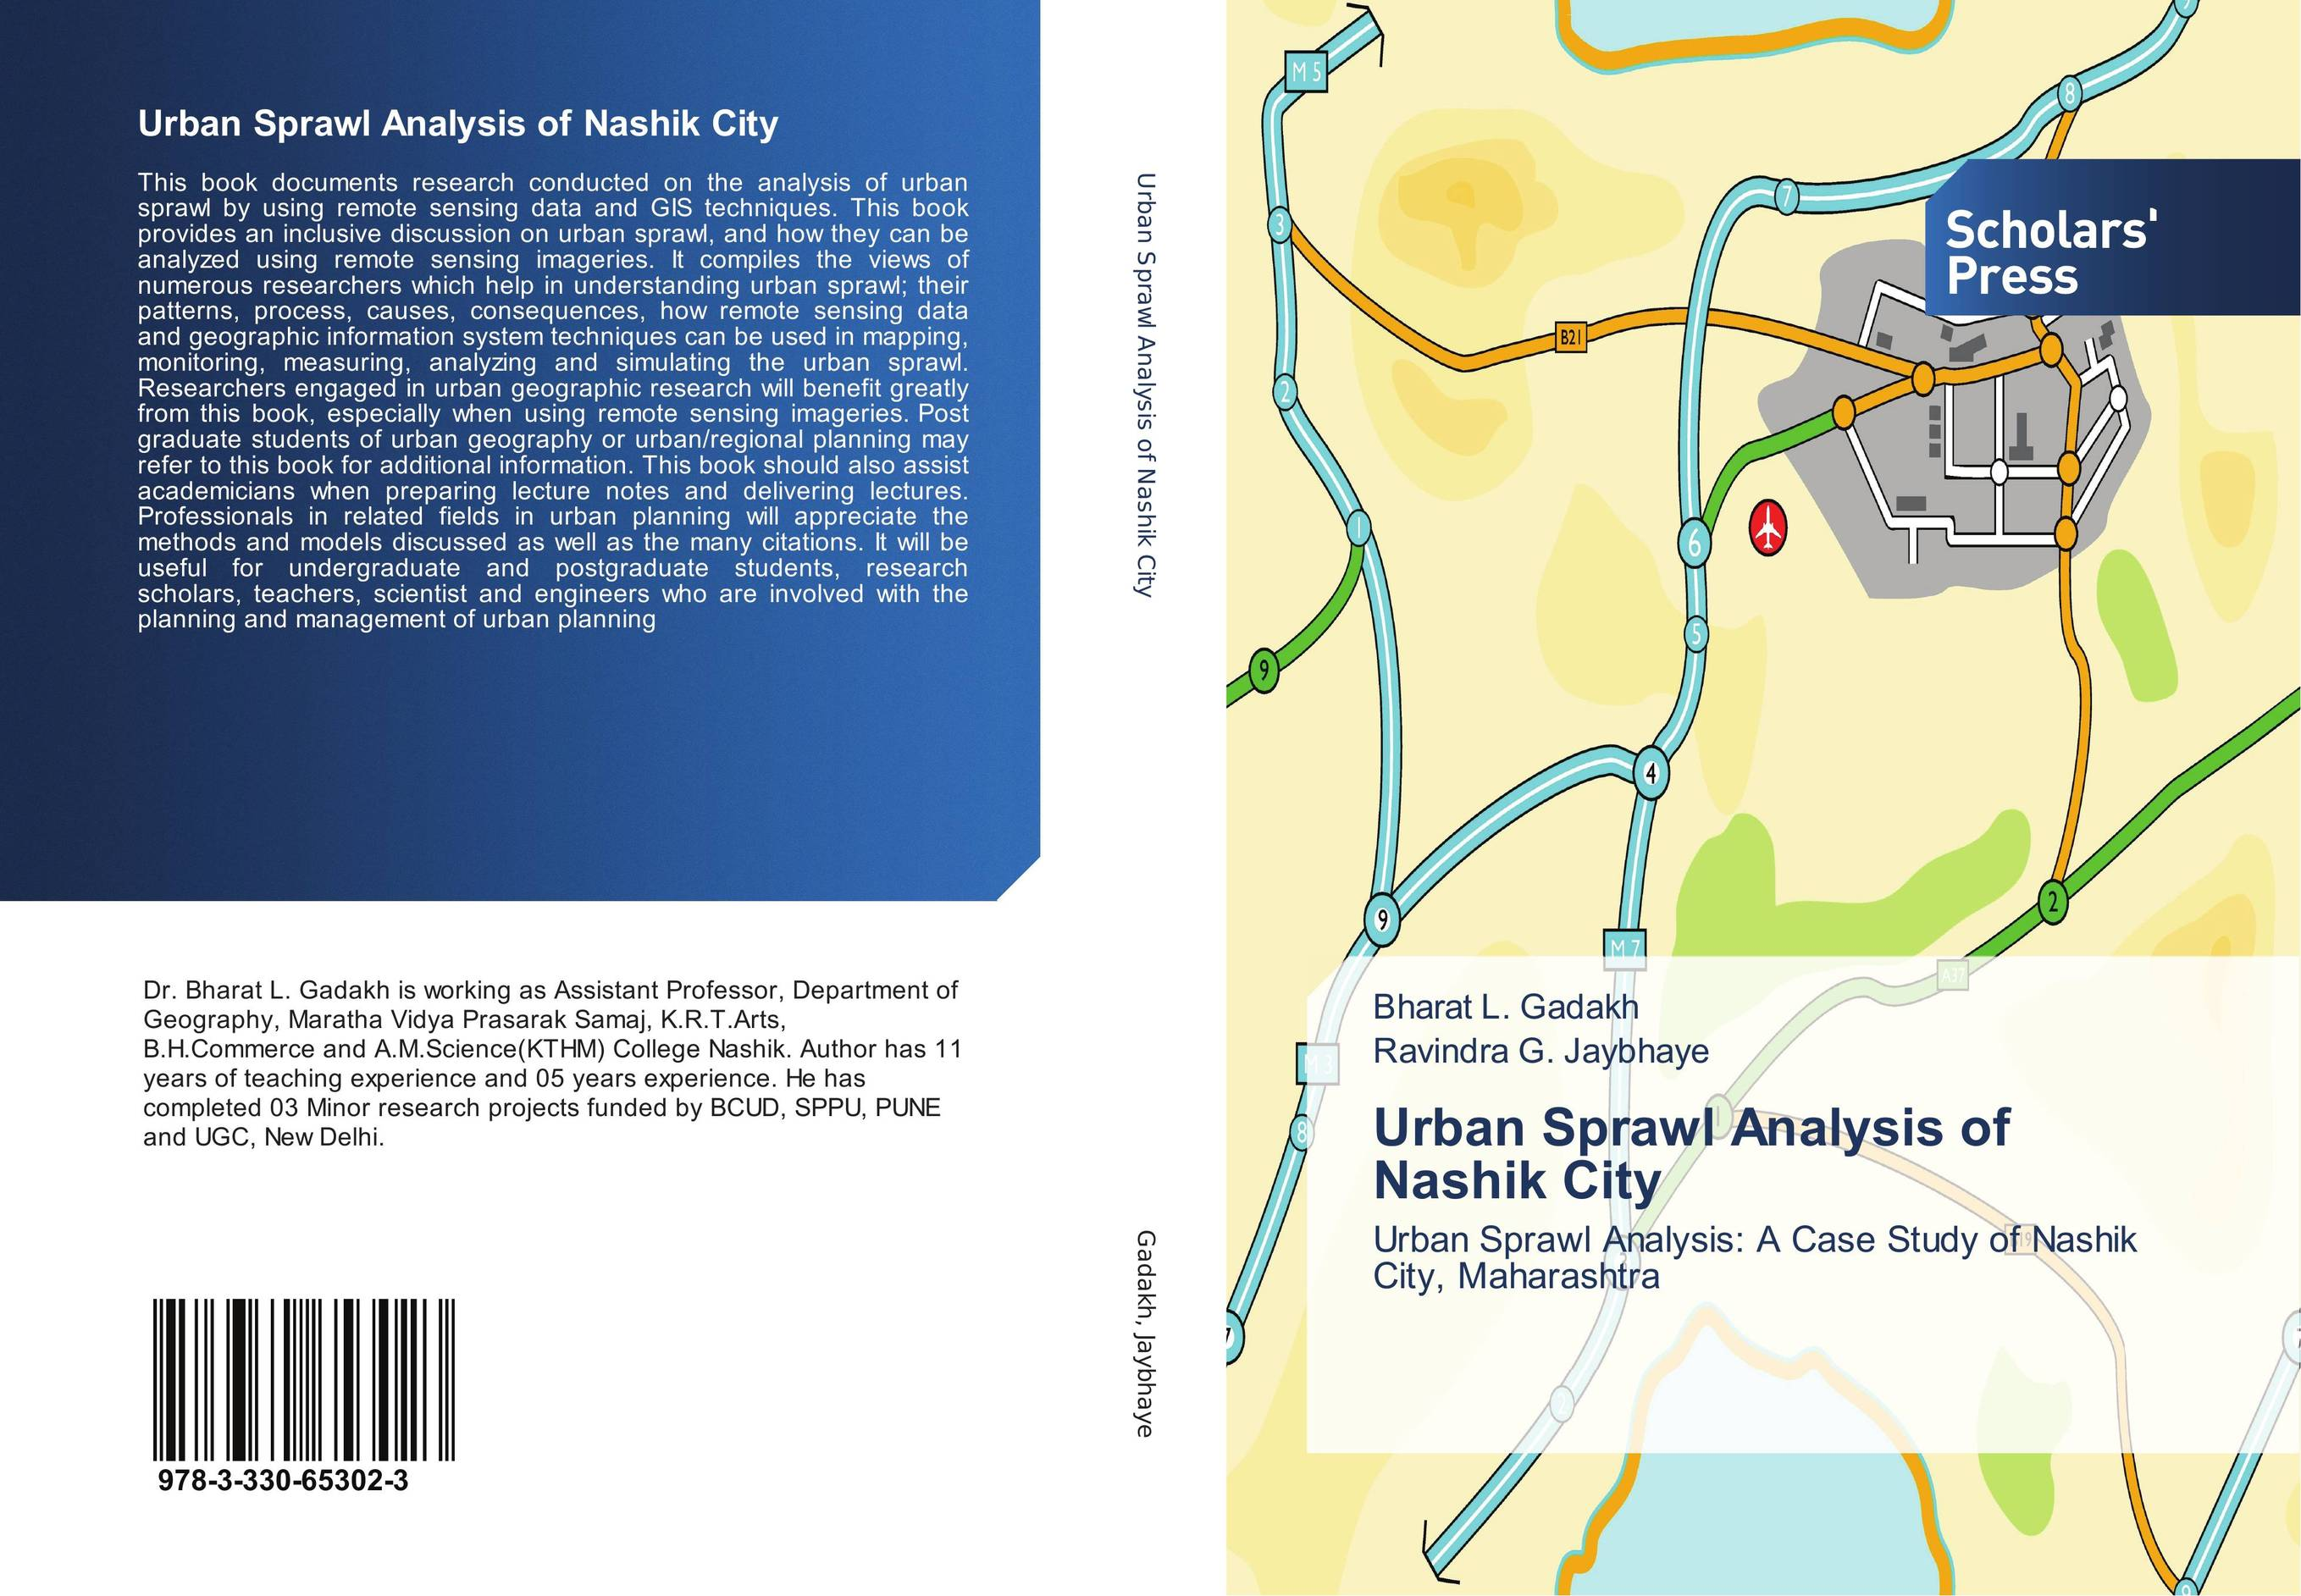 9783330653023 Urban Sprawl Analysis of Nashik City Bharat L. Gadakh and Ravind